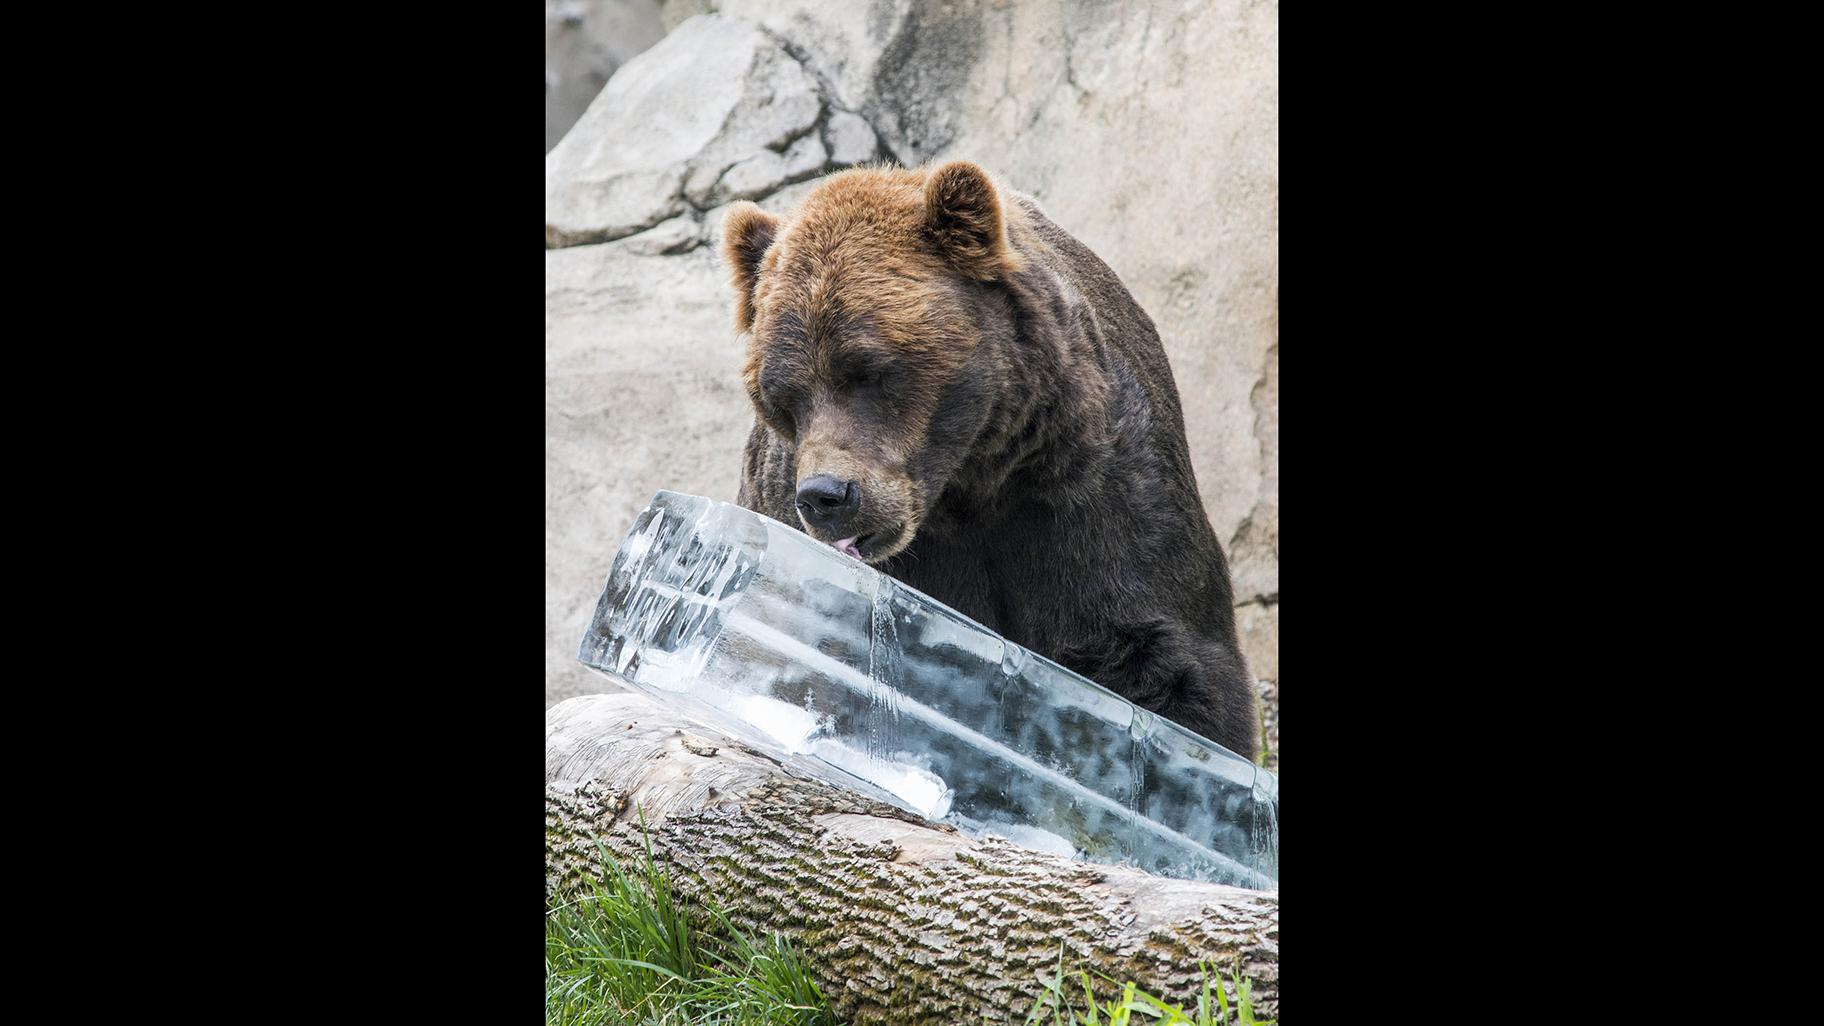 Axhi, a grizzly bear at Brookfield Zoo, enjoys a 300-pound block of ice. (Kelly Tone / Chicago Zoological Society)